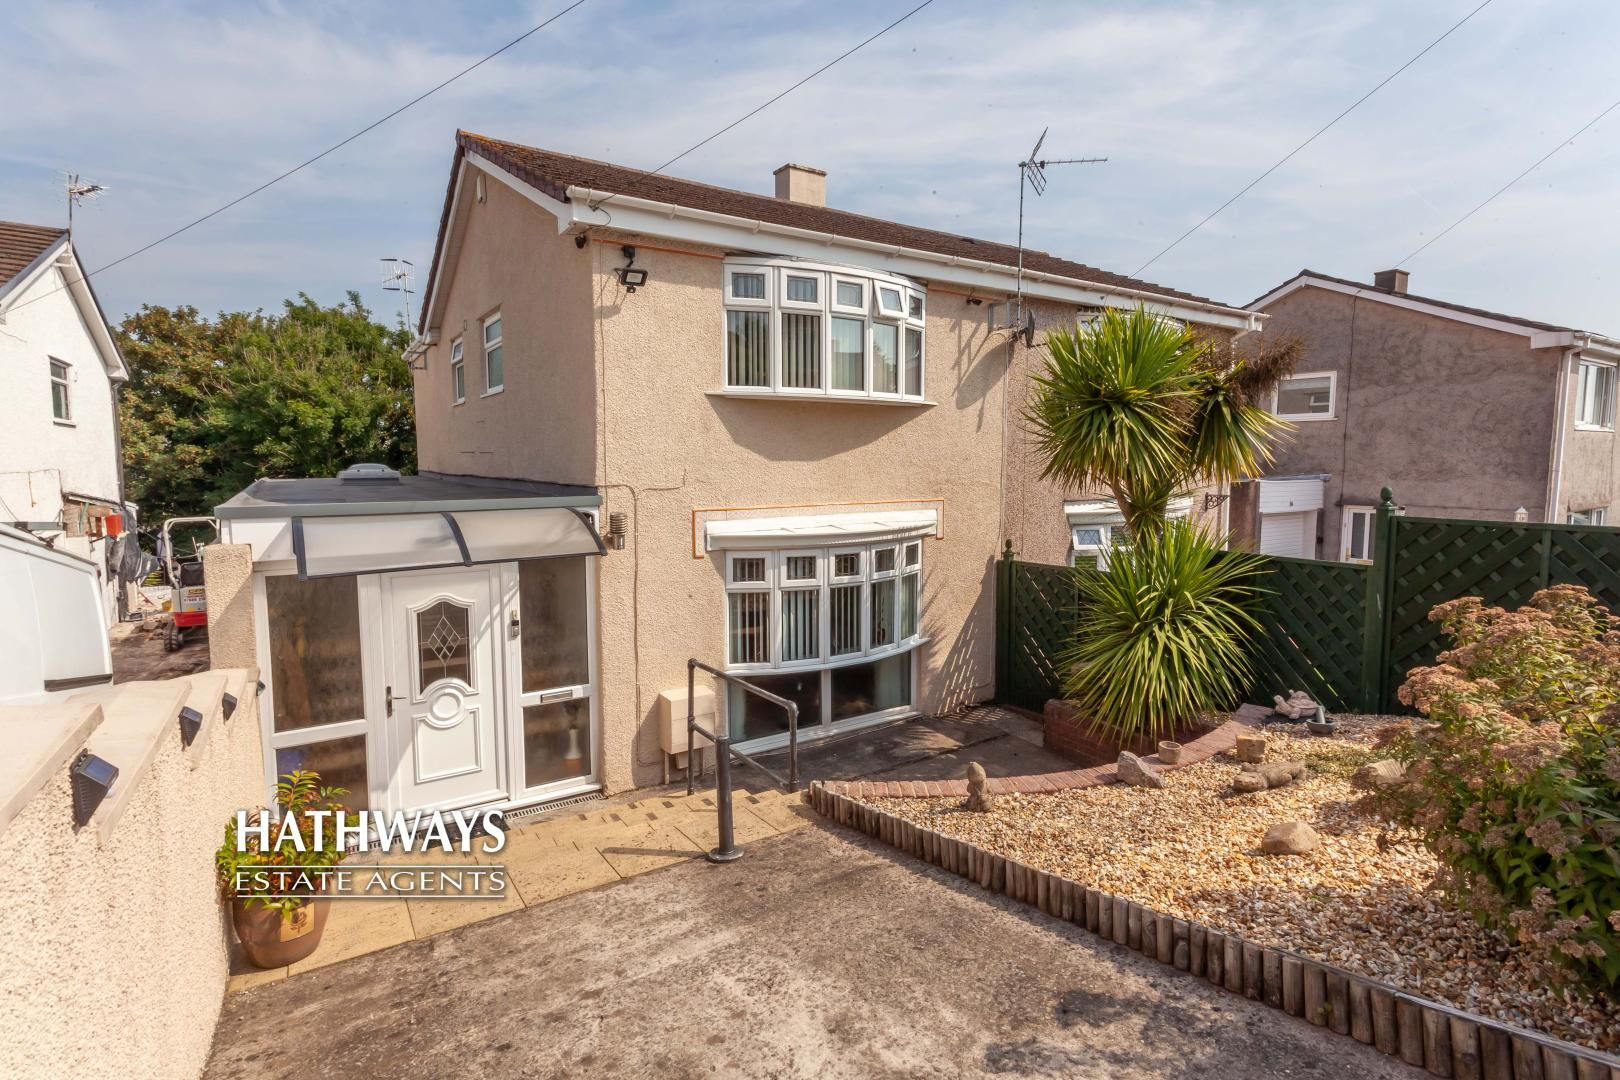 3 bed house for sale in Parklawn Close, NP44